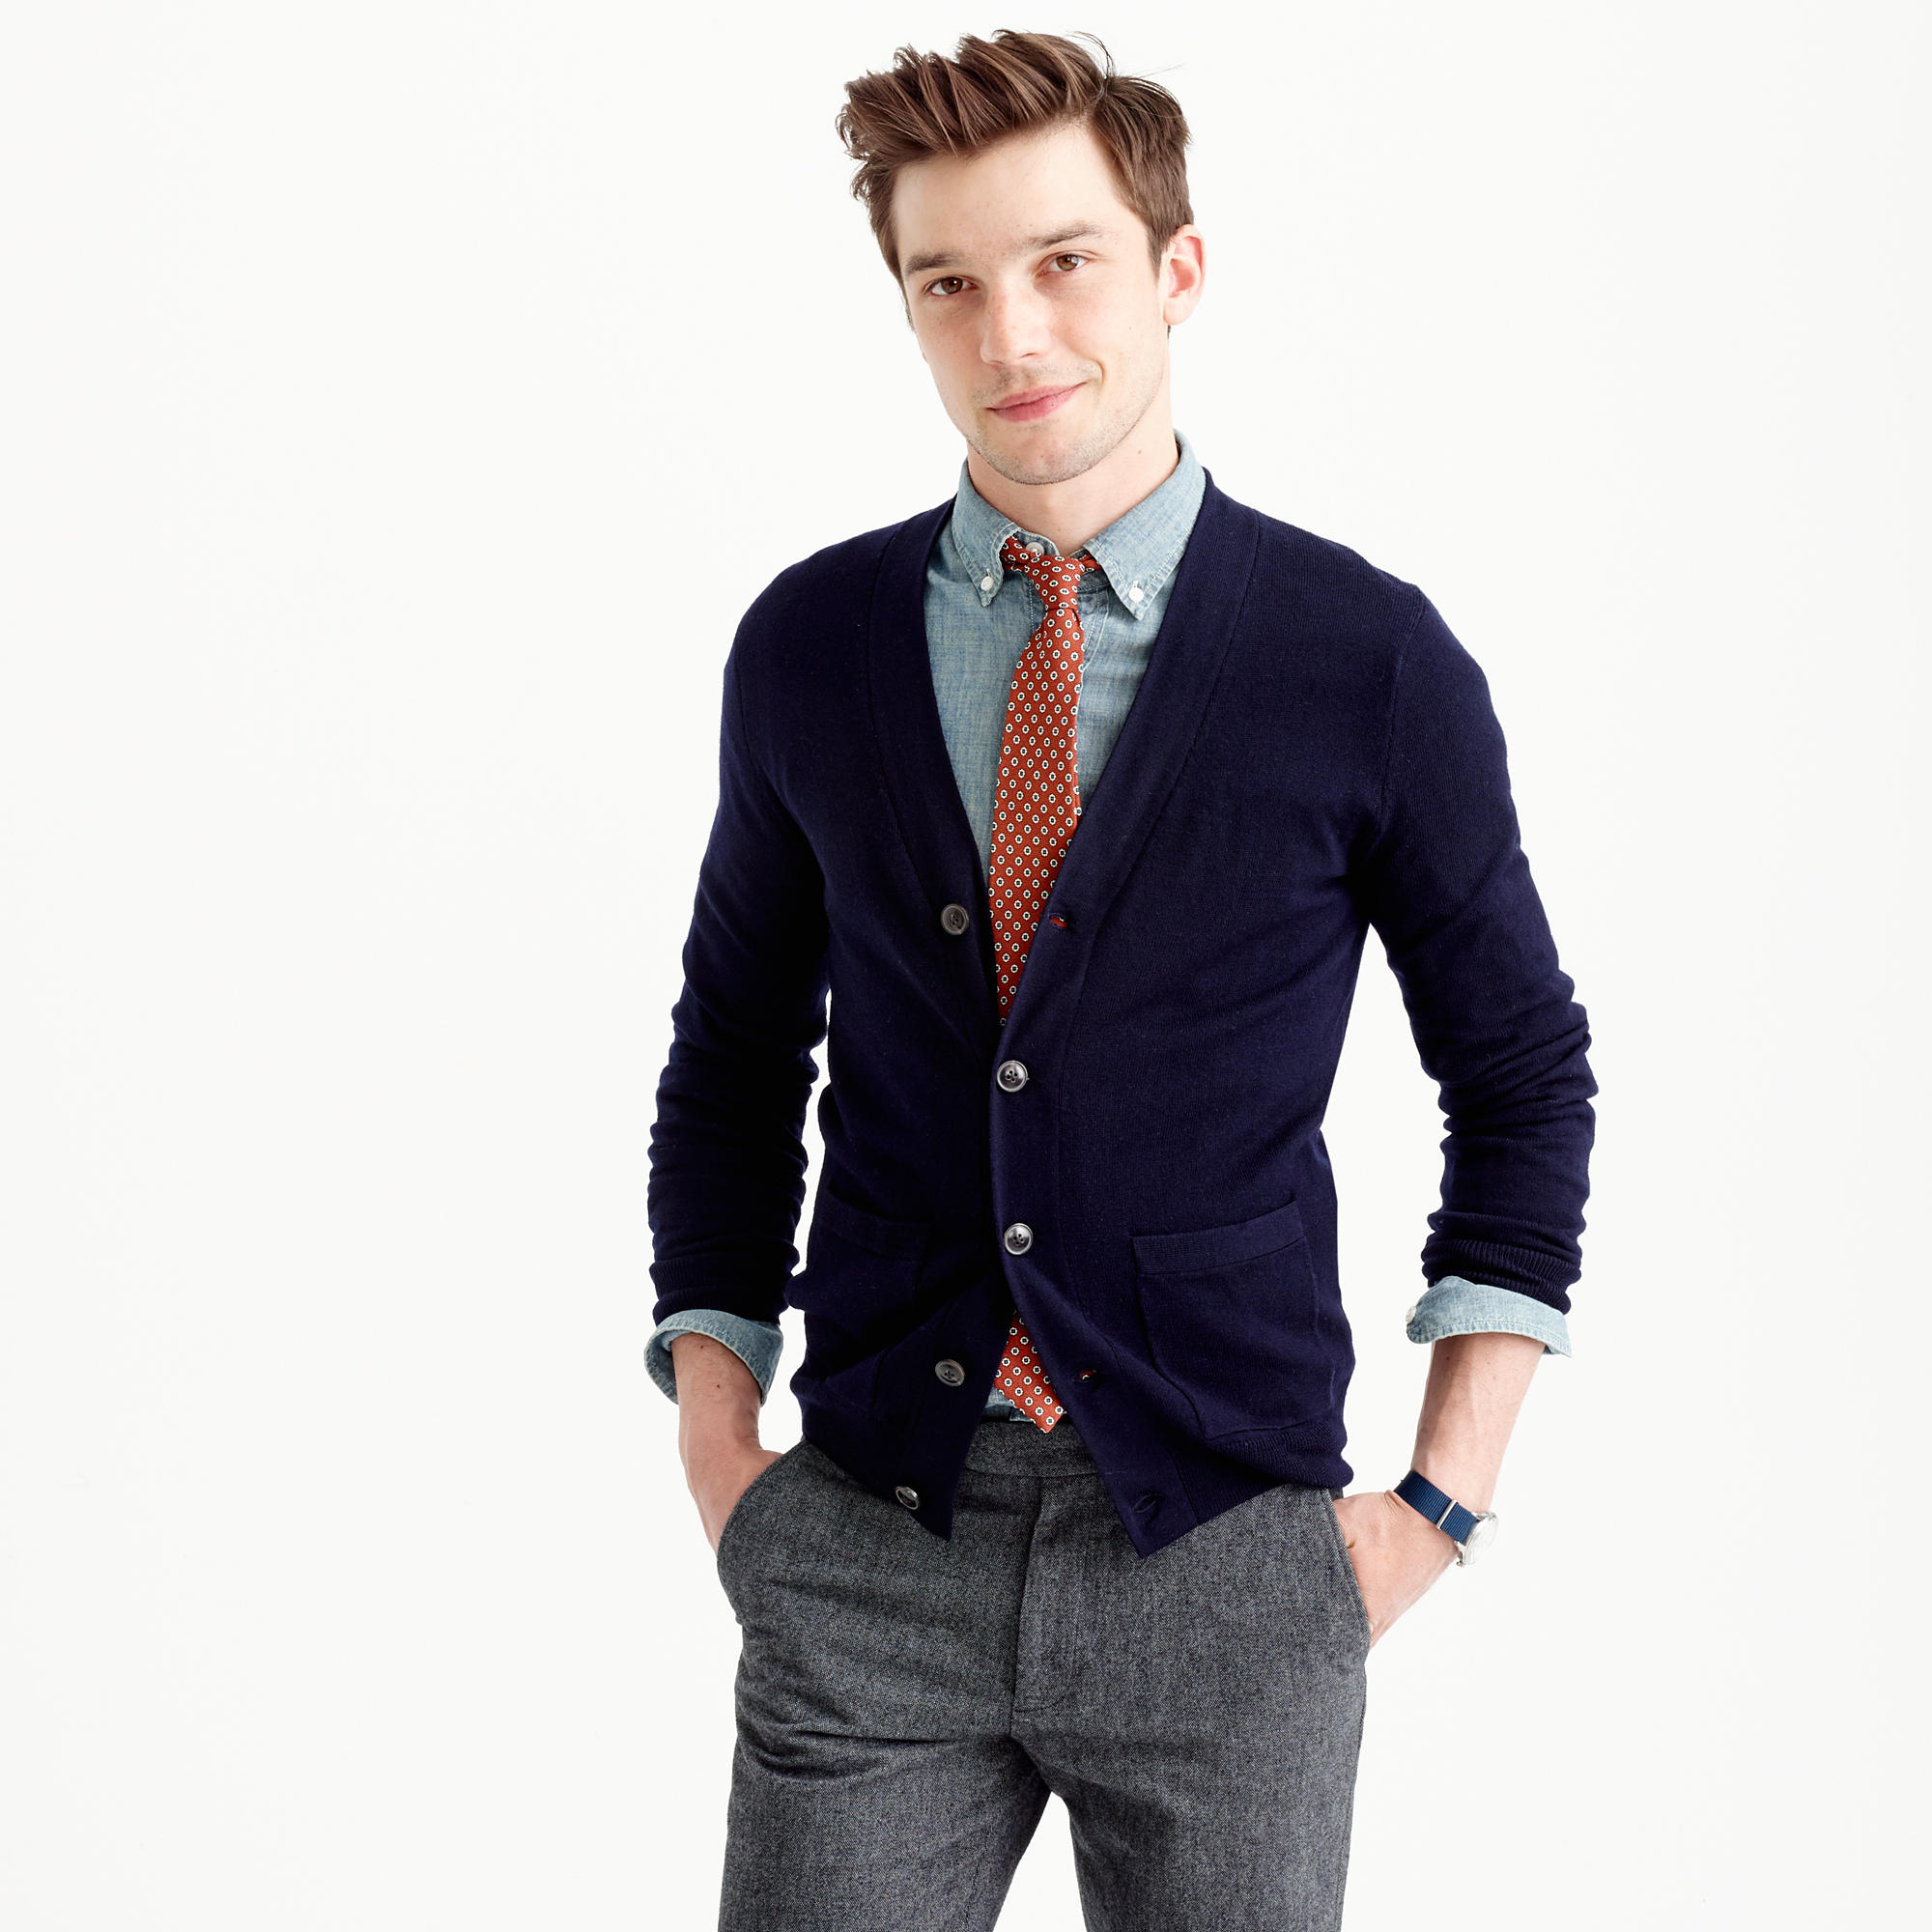 Men's Slim Size Clothing - Slim and Small Size Men's Sweaters